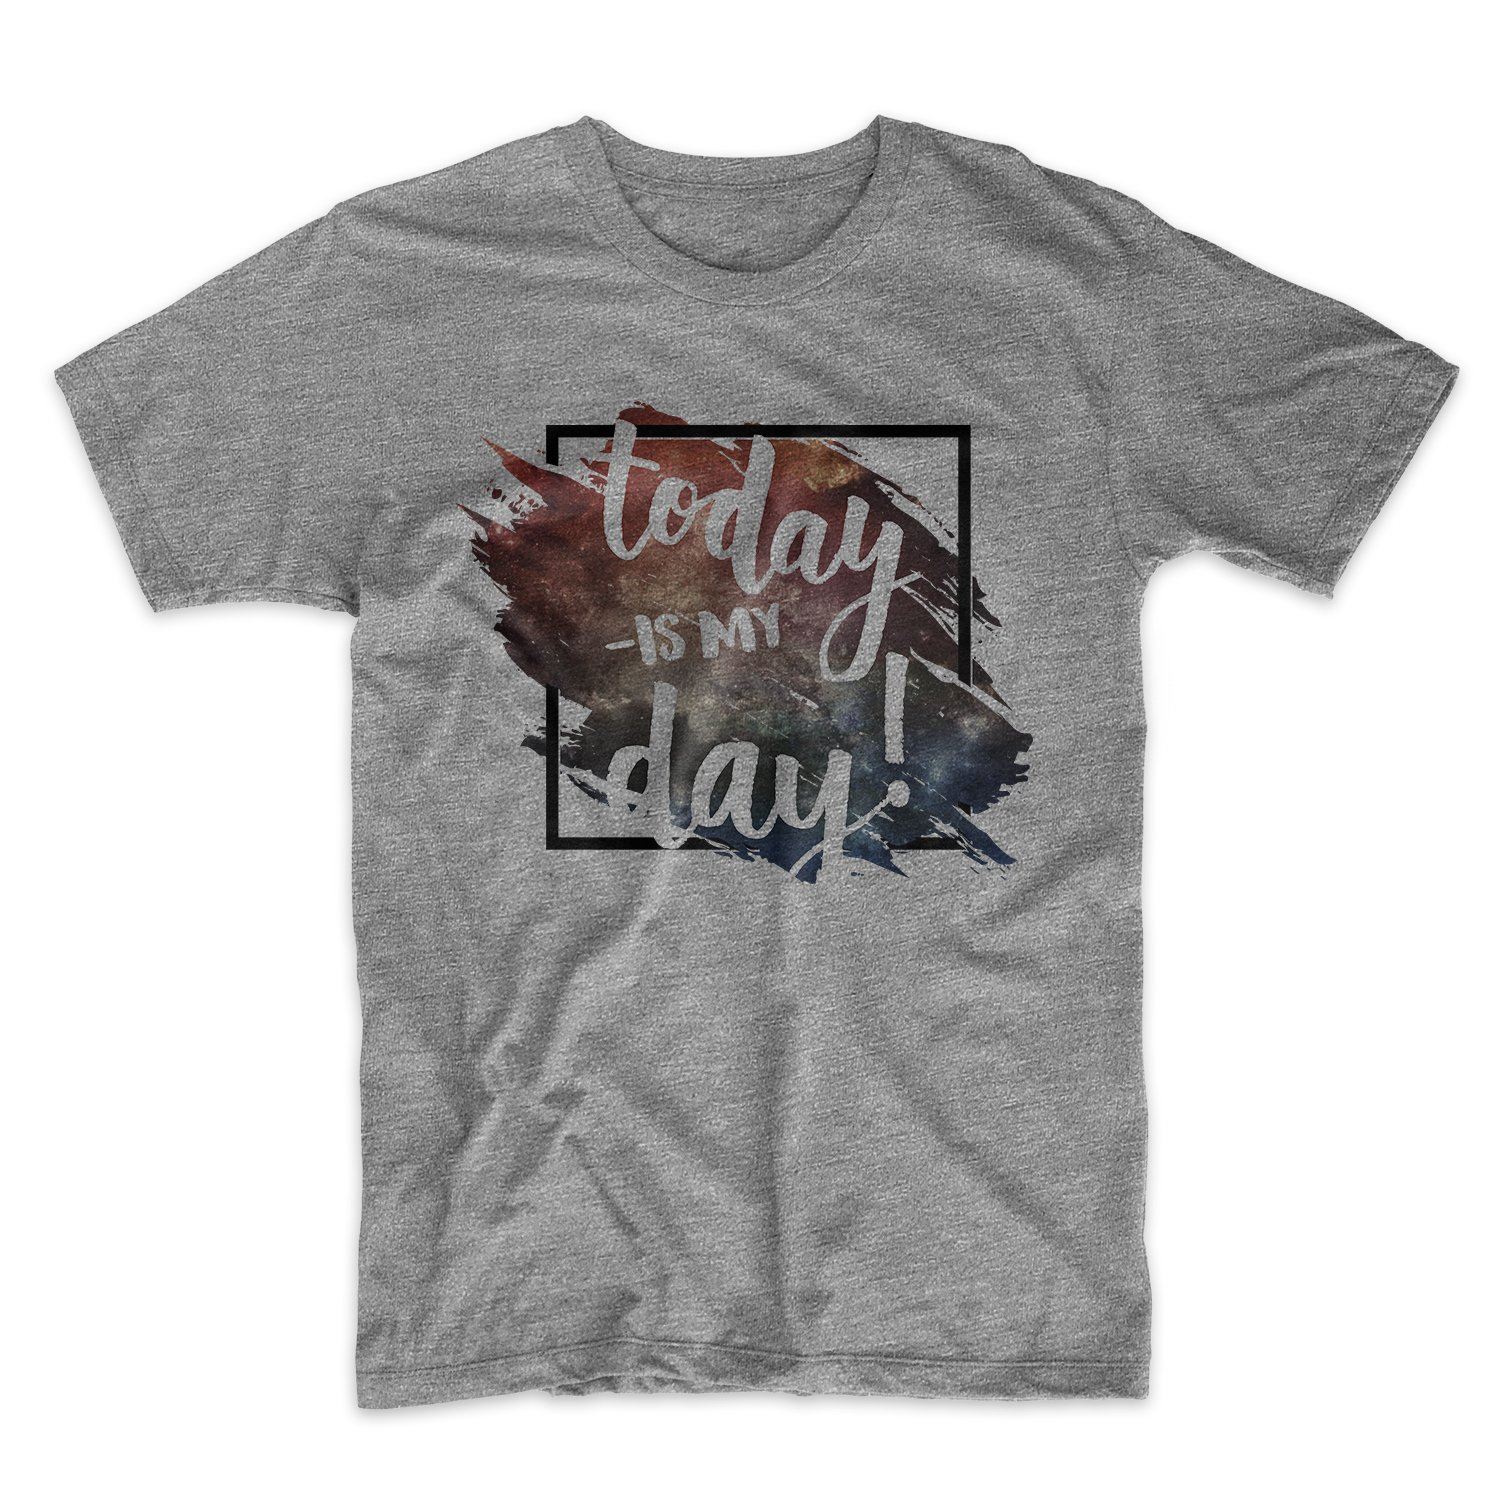 Of Legends Today Is My Day Artwork Colorful Motivational Inspirational S Shirts